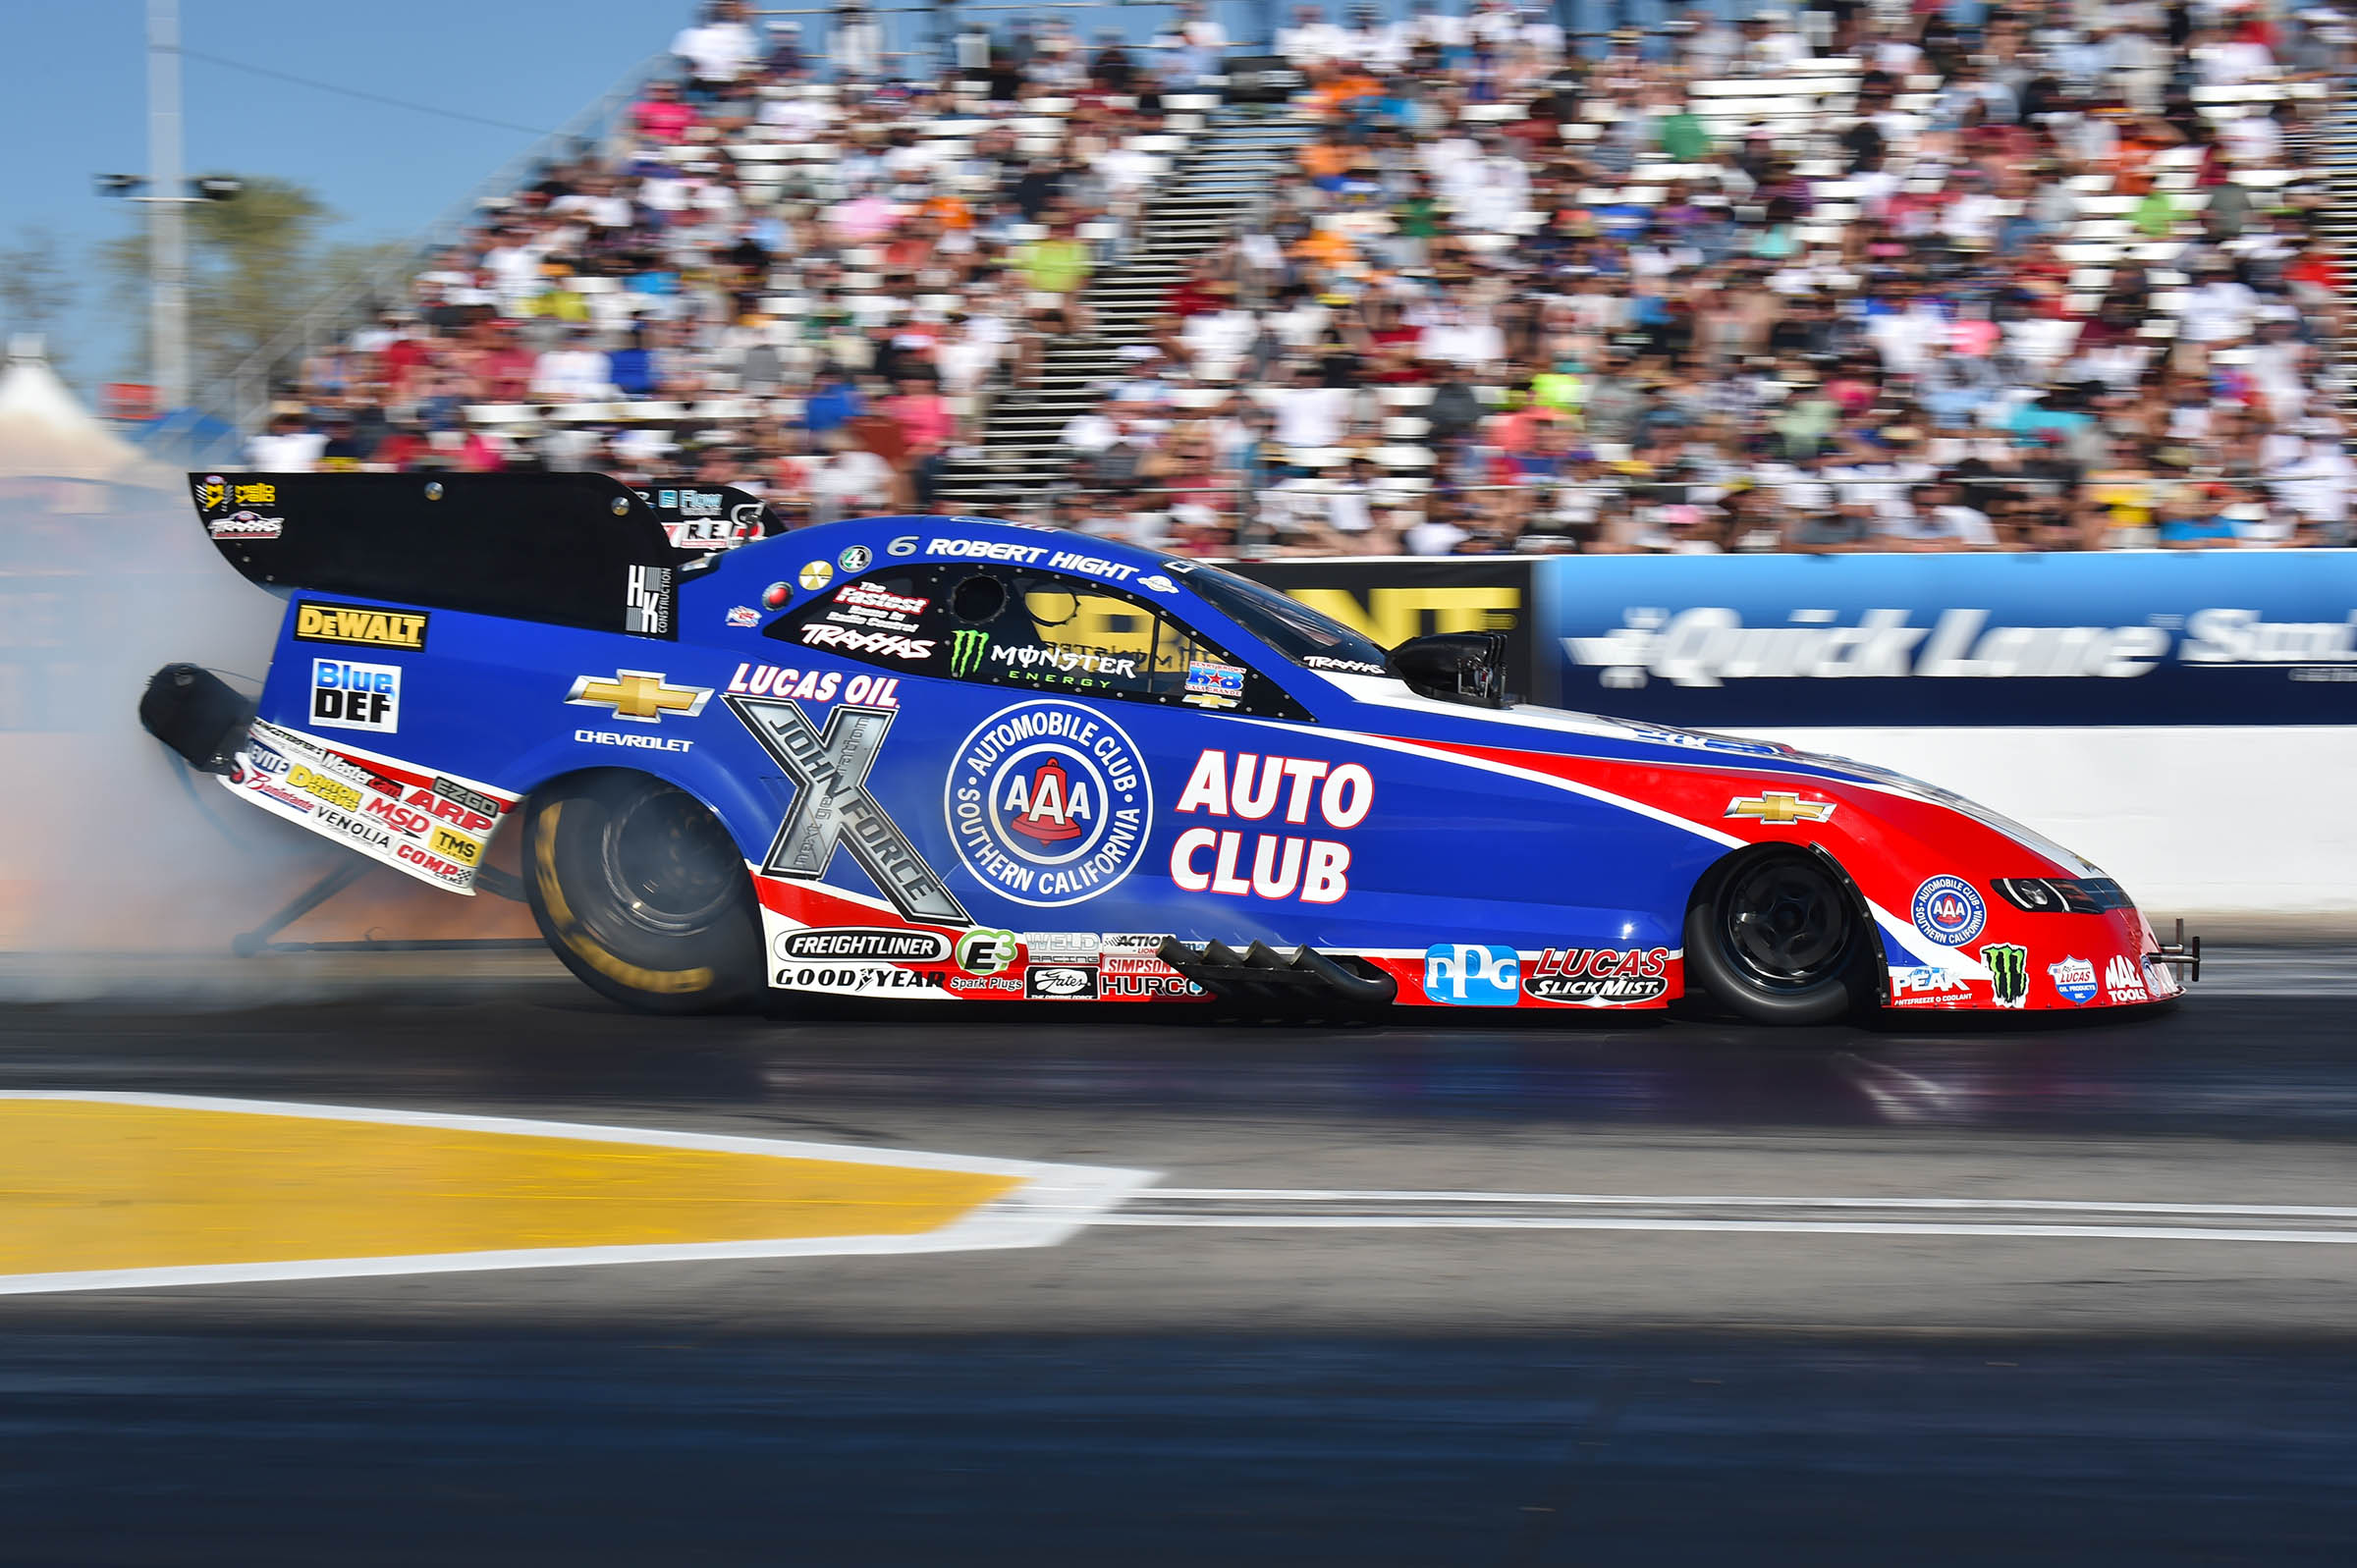 Bankruptcy Jfr Cars South